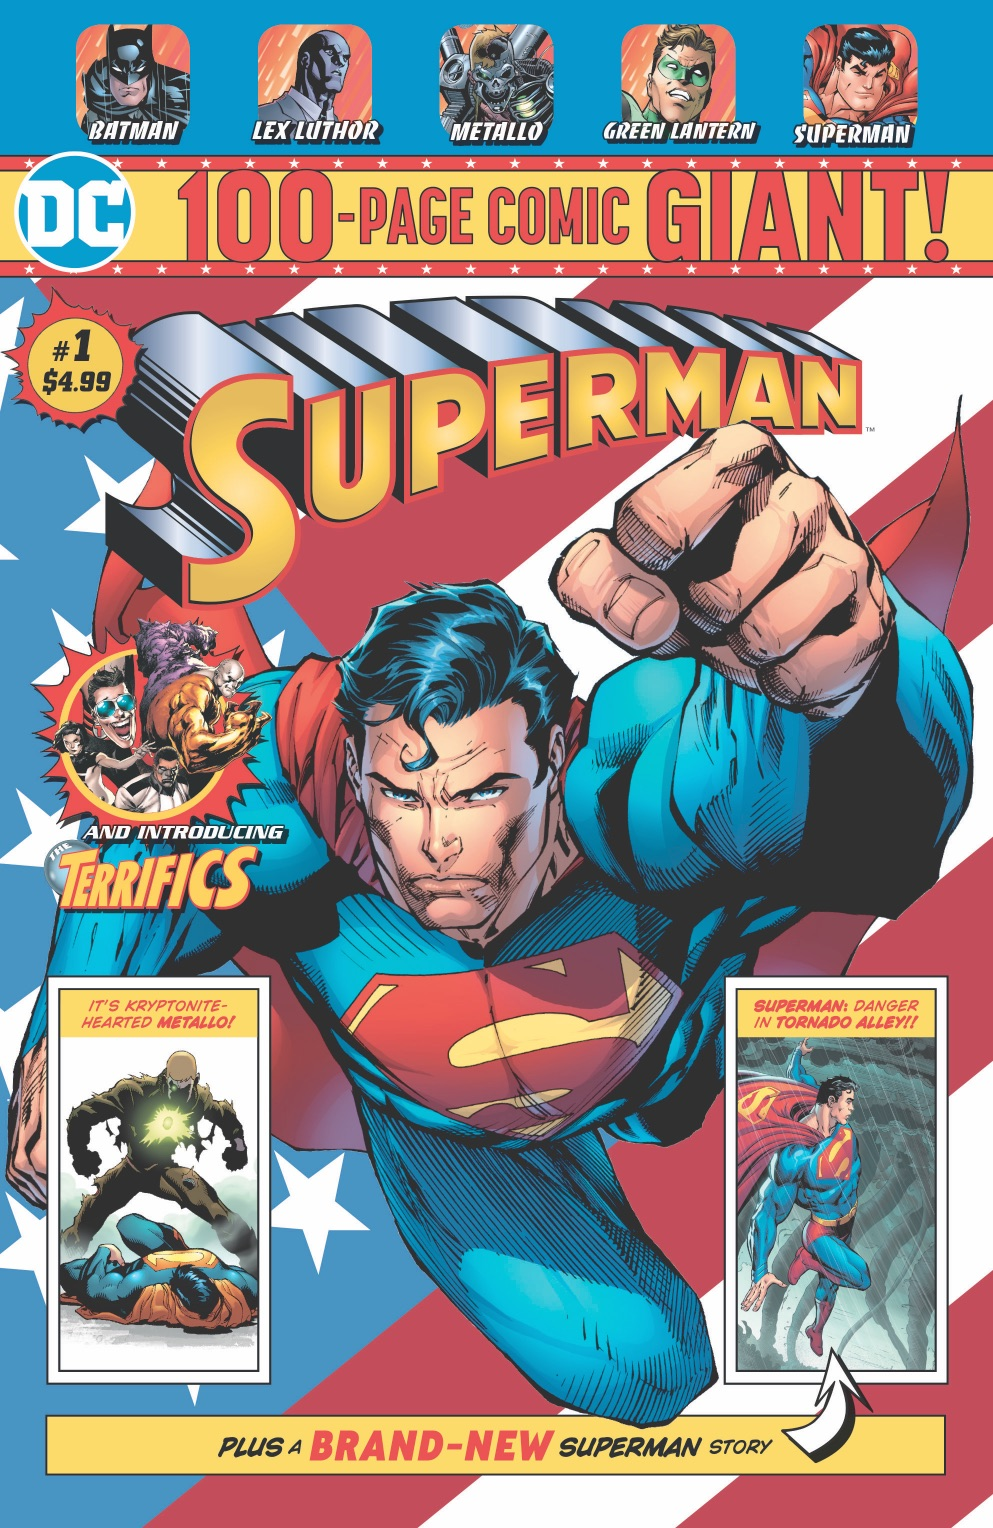 SUPERMAN GIANT #1  sc 1 st  Superman Homepage & 100-Page Giant Comics from DC to be Sold Exclusively at Walmart ...